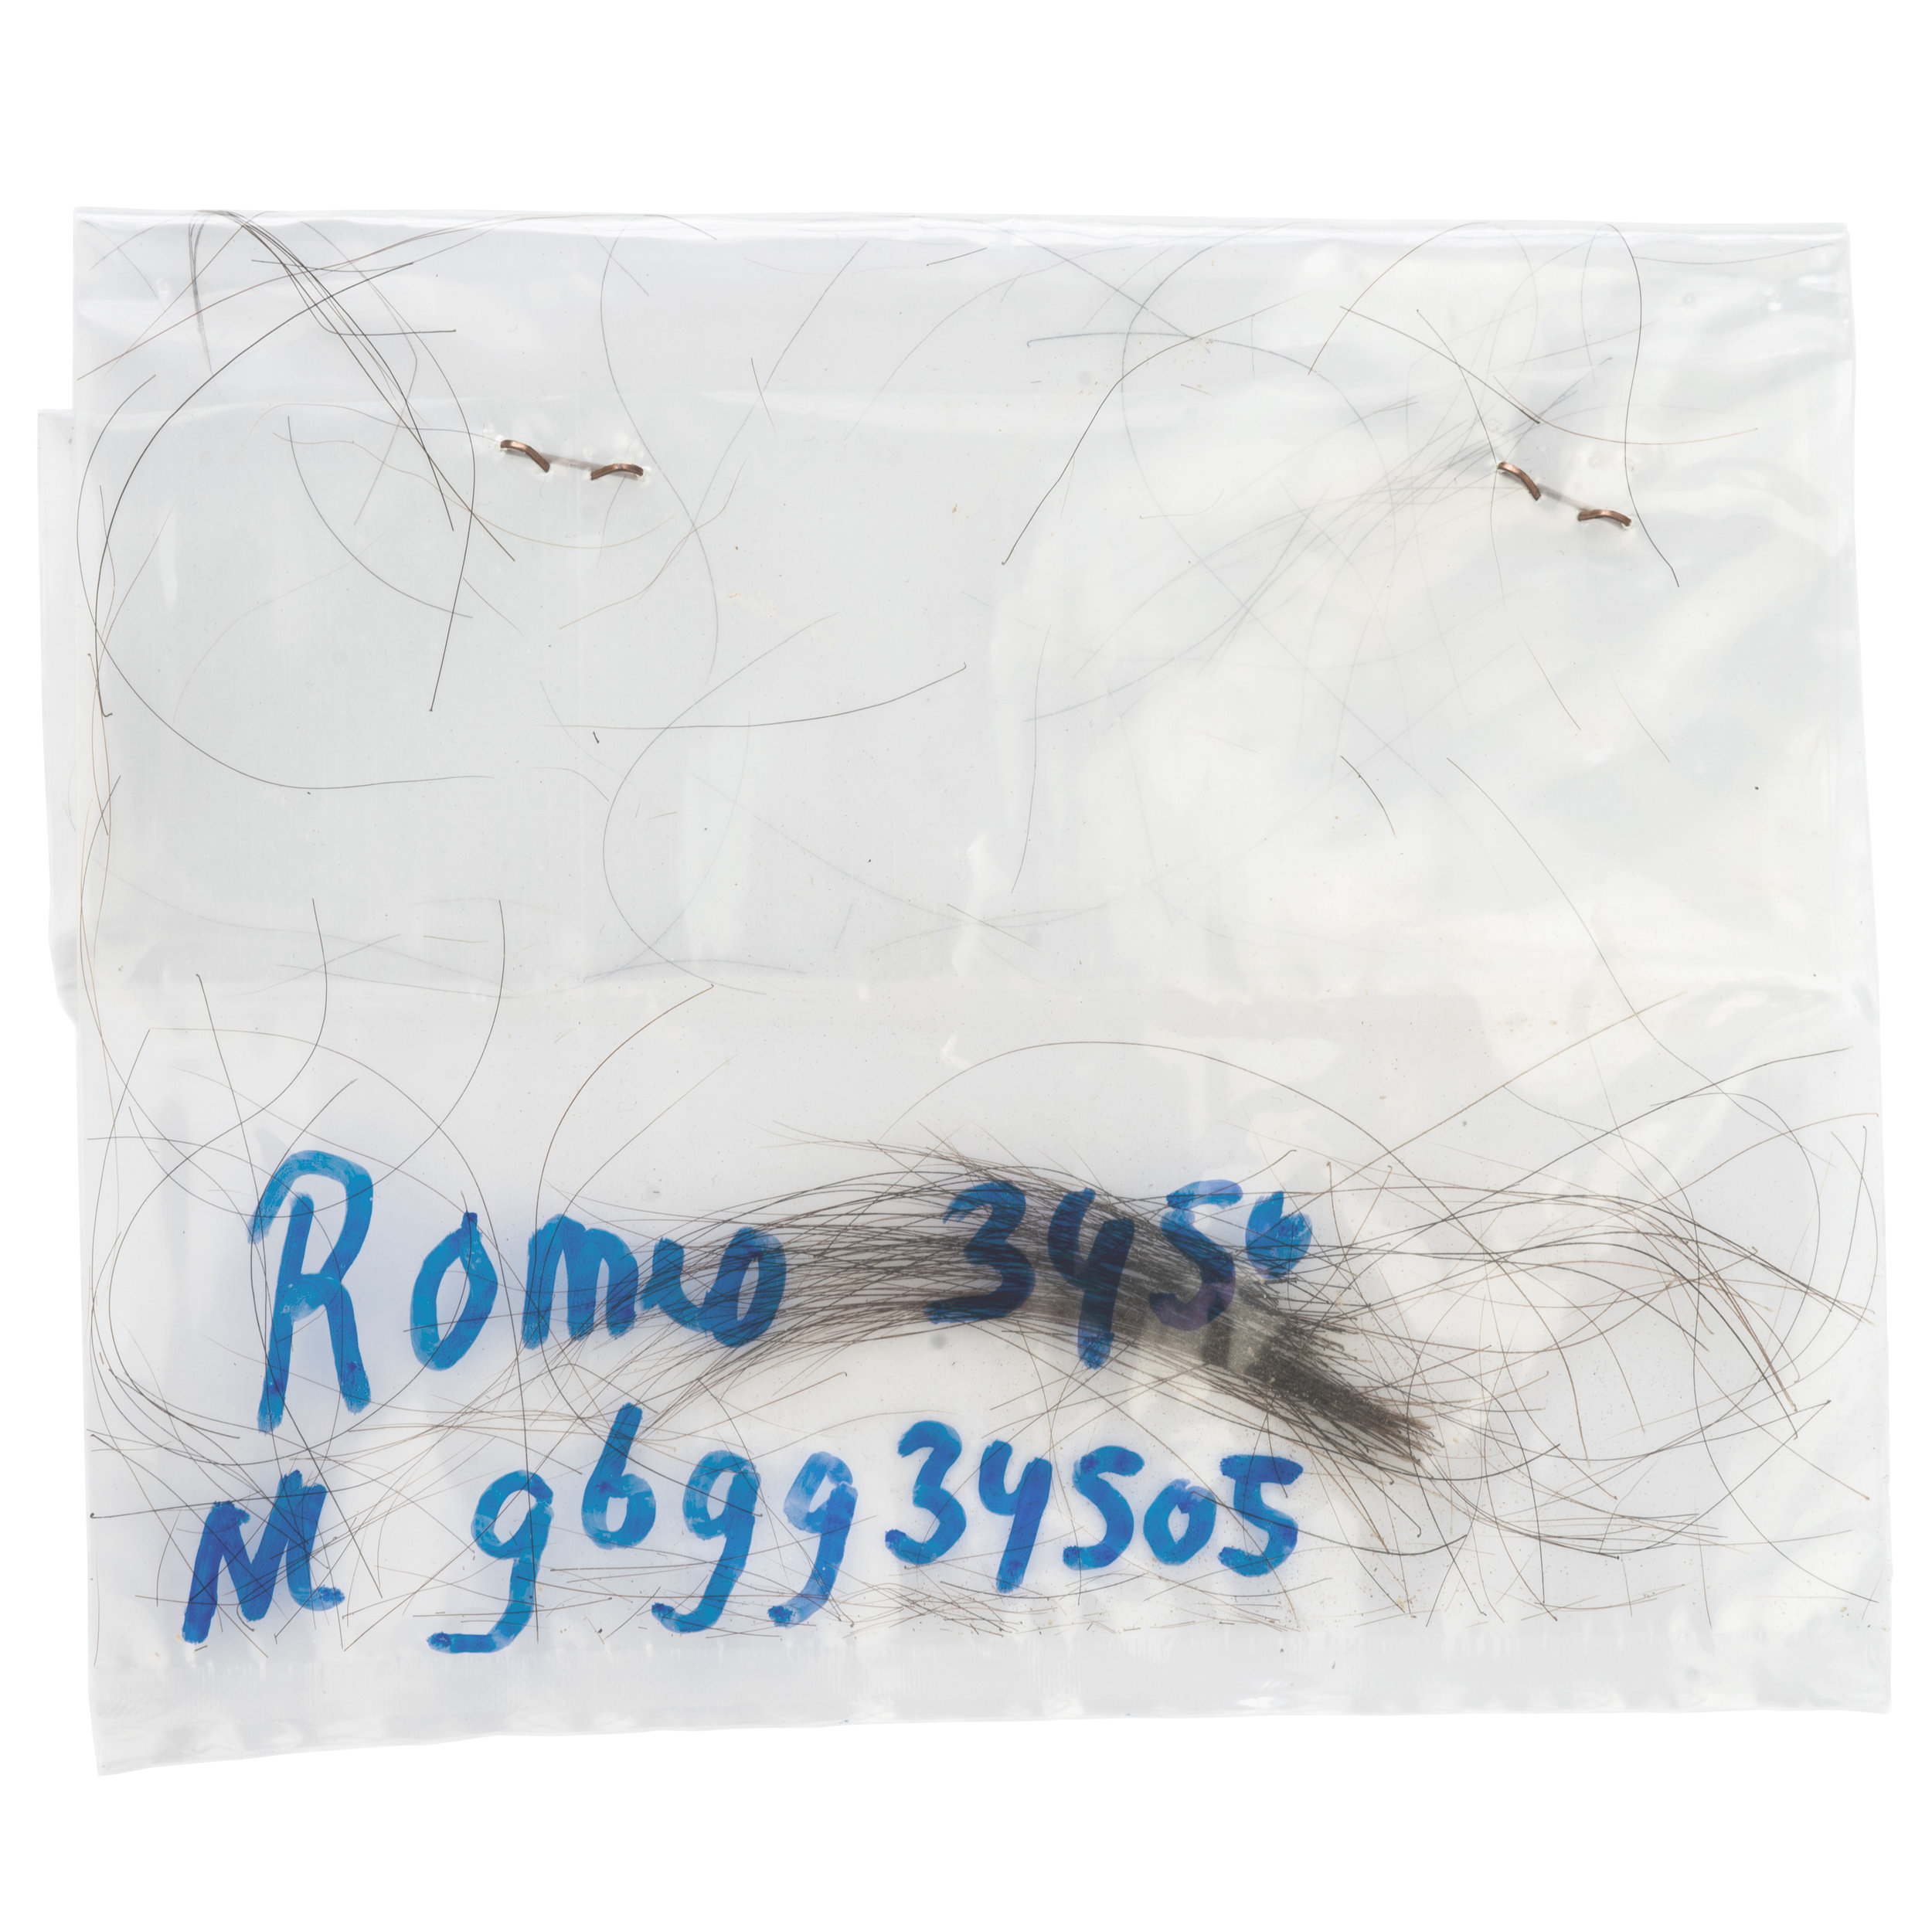 - Romeo 3450's hairCow hair and root. Extracted by pulling from around the ear area. Hair is used for DNA tests in order to trace the paternity of newborn calves.